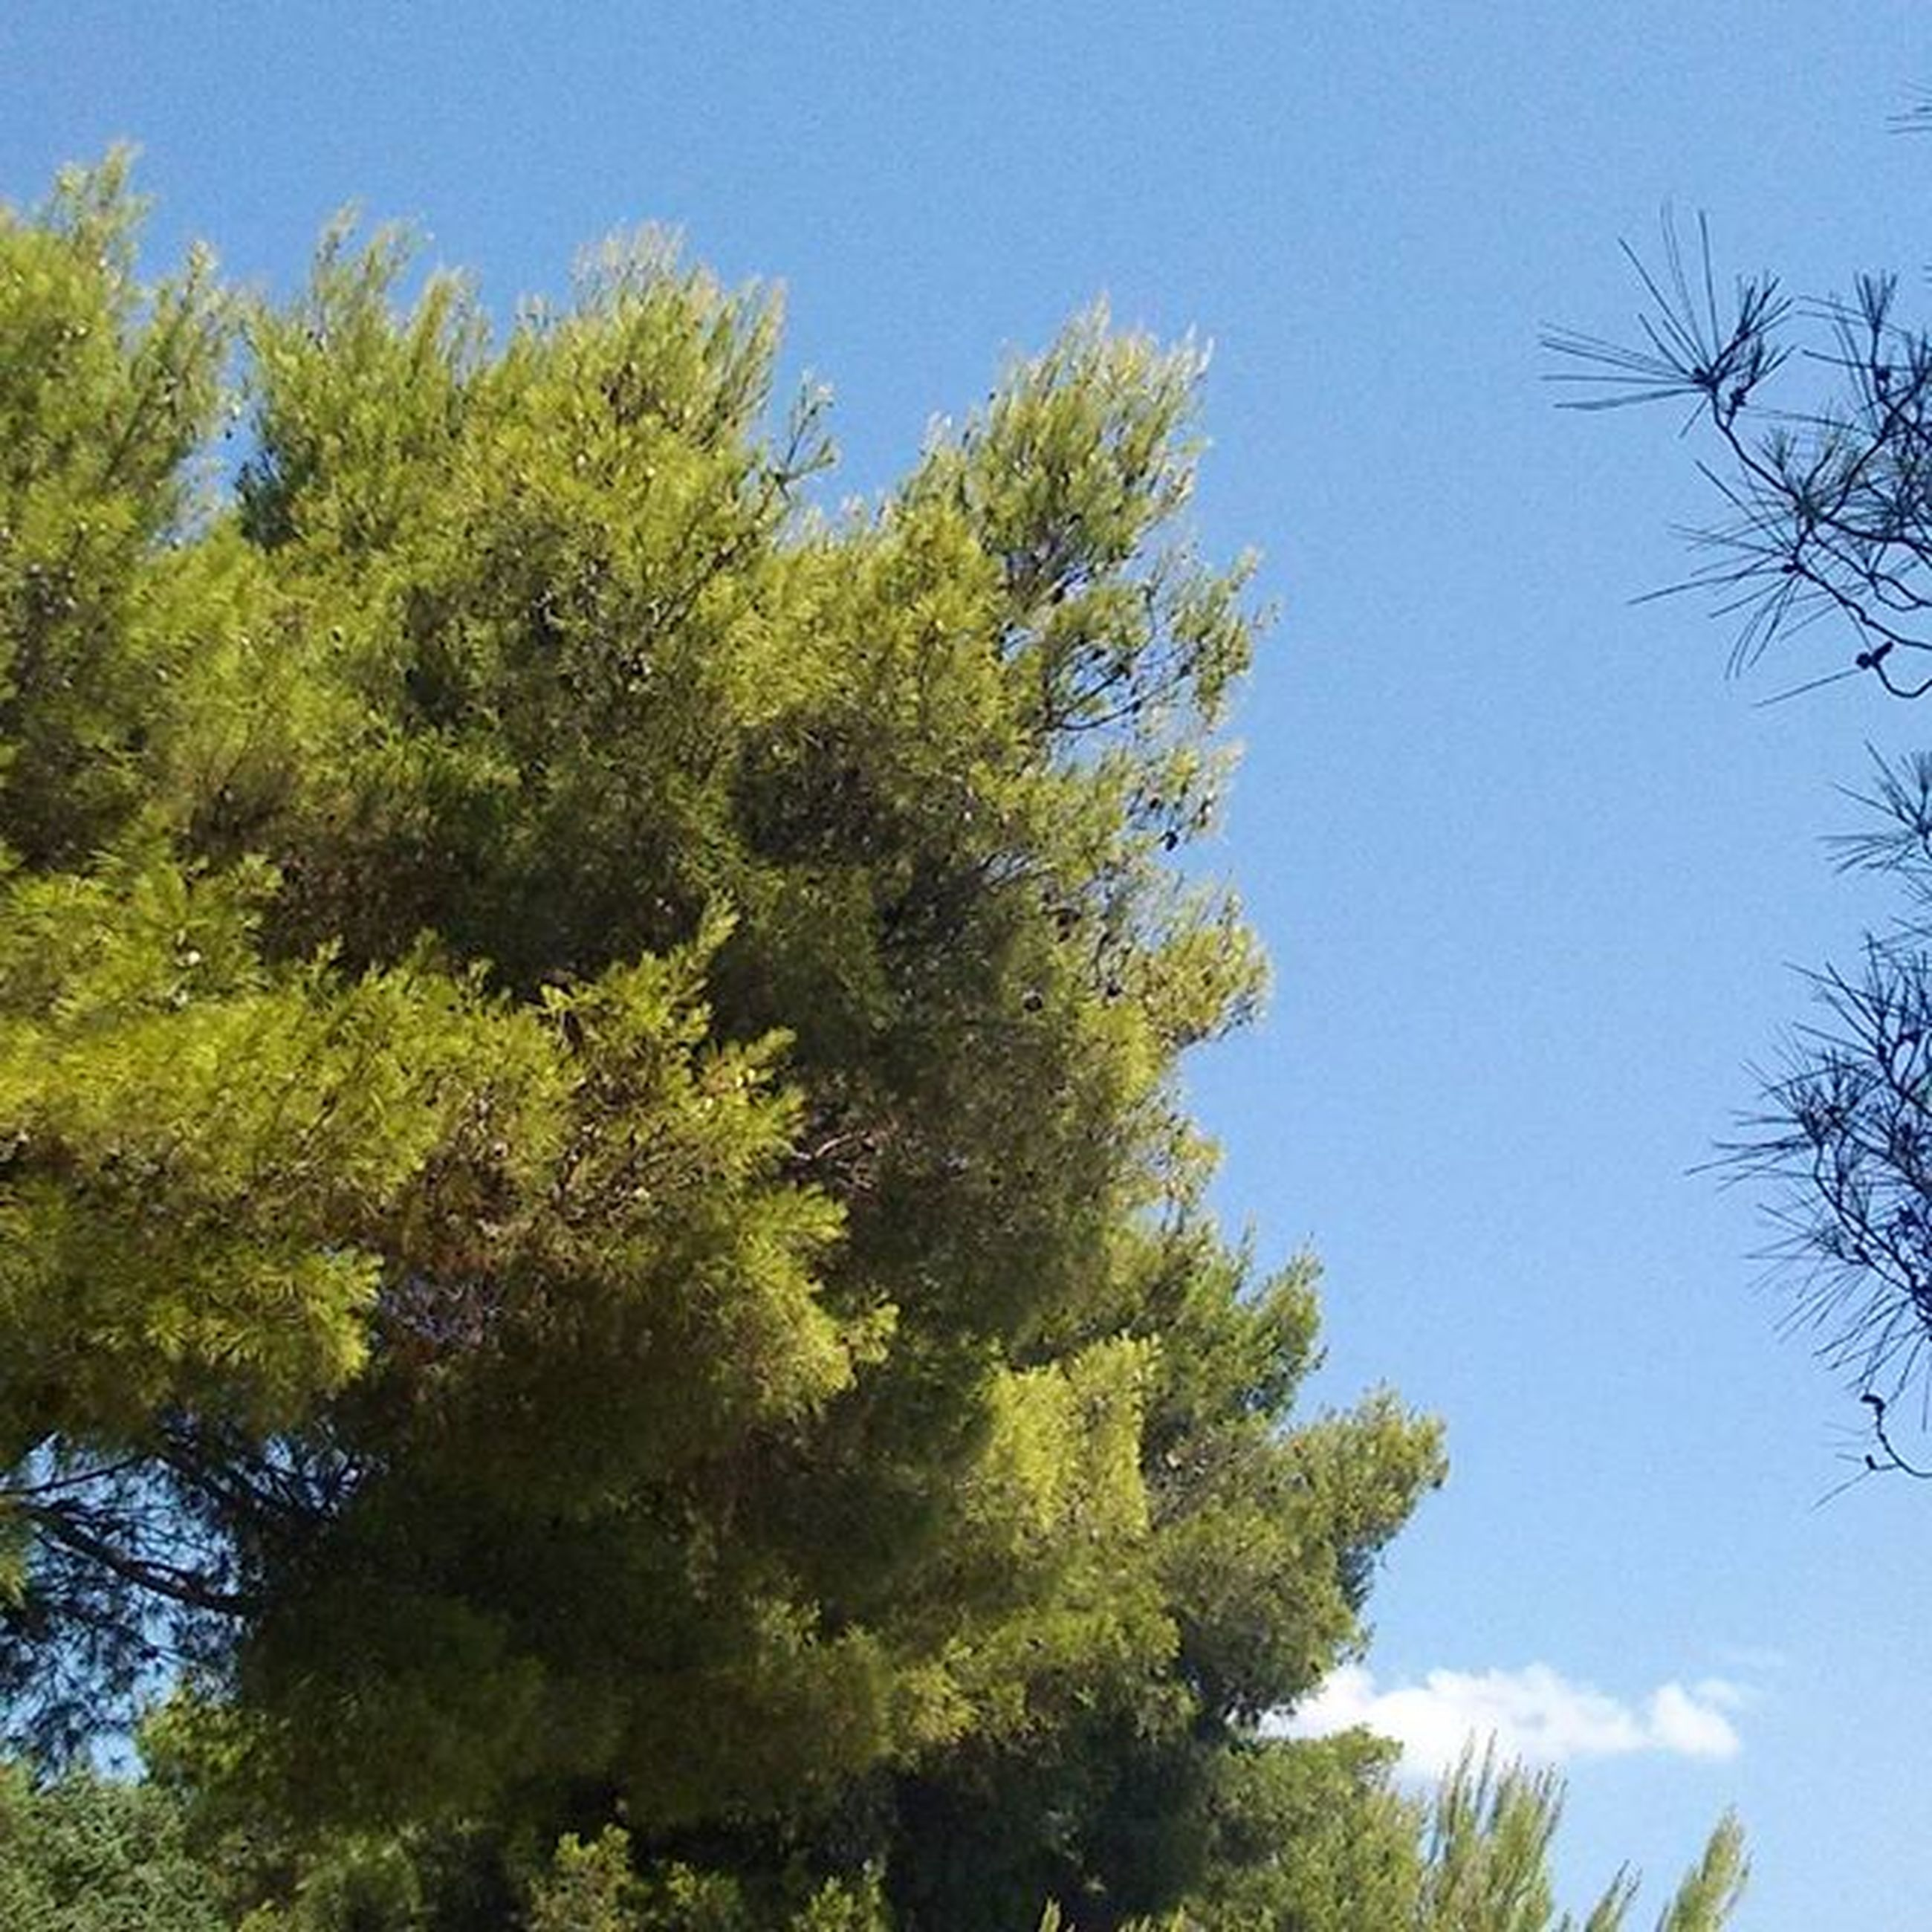 tree, low angle view, clear sky, blue, growth, tranquility, branch, green color, beauty in nature, nature, tranquil scene, scenics, sky, day, green, sunlight, no people, lush foliage, outdoors, idyllic